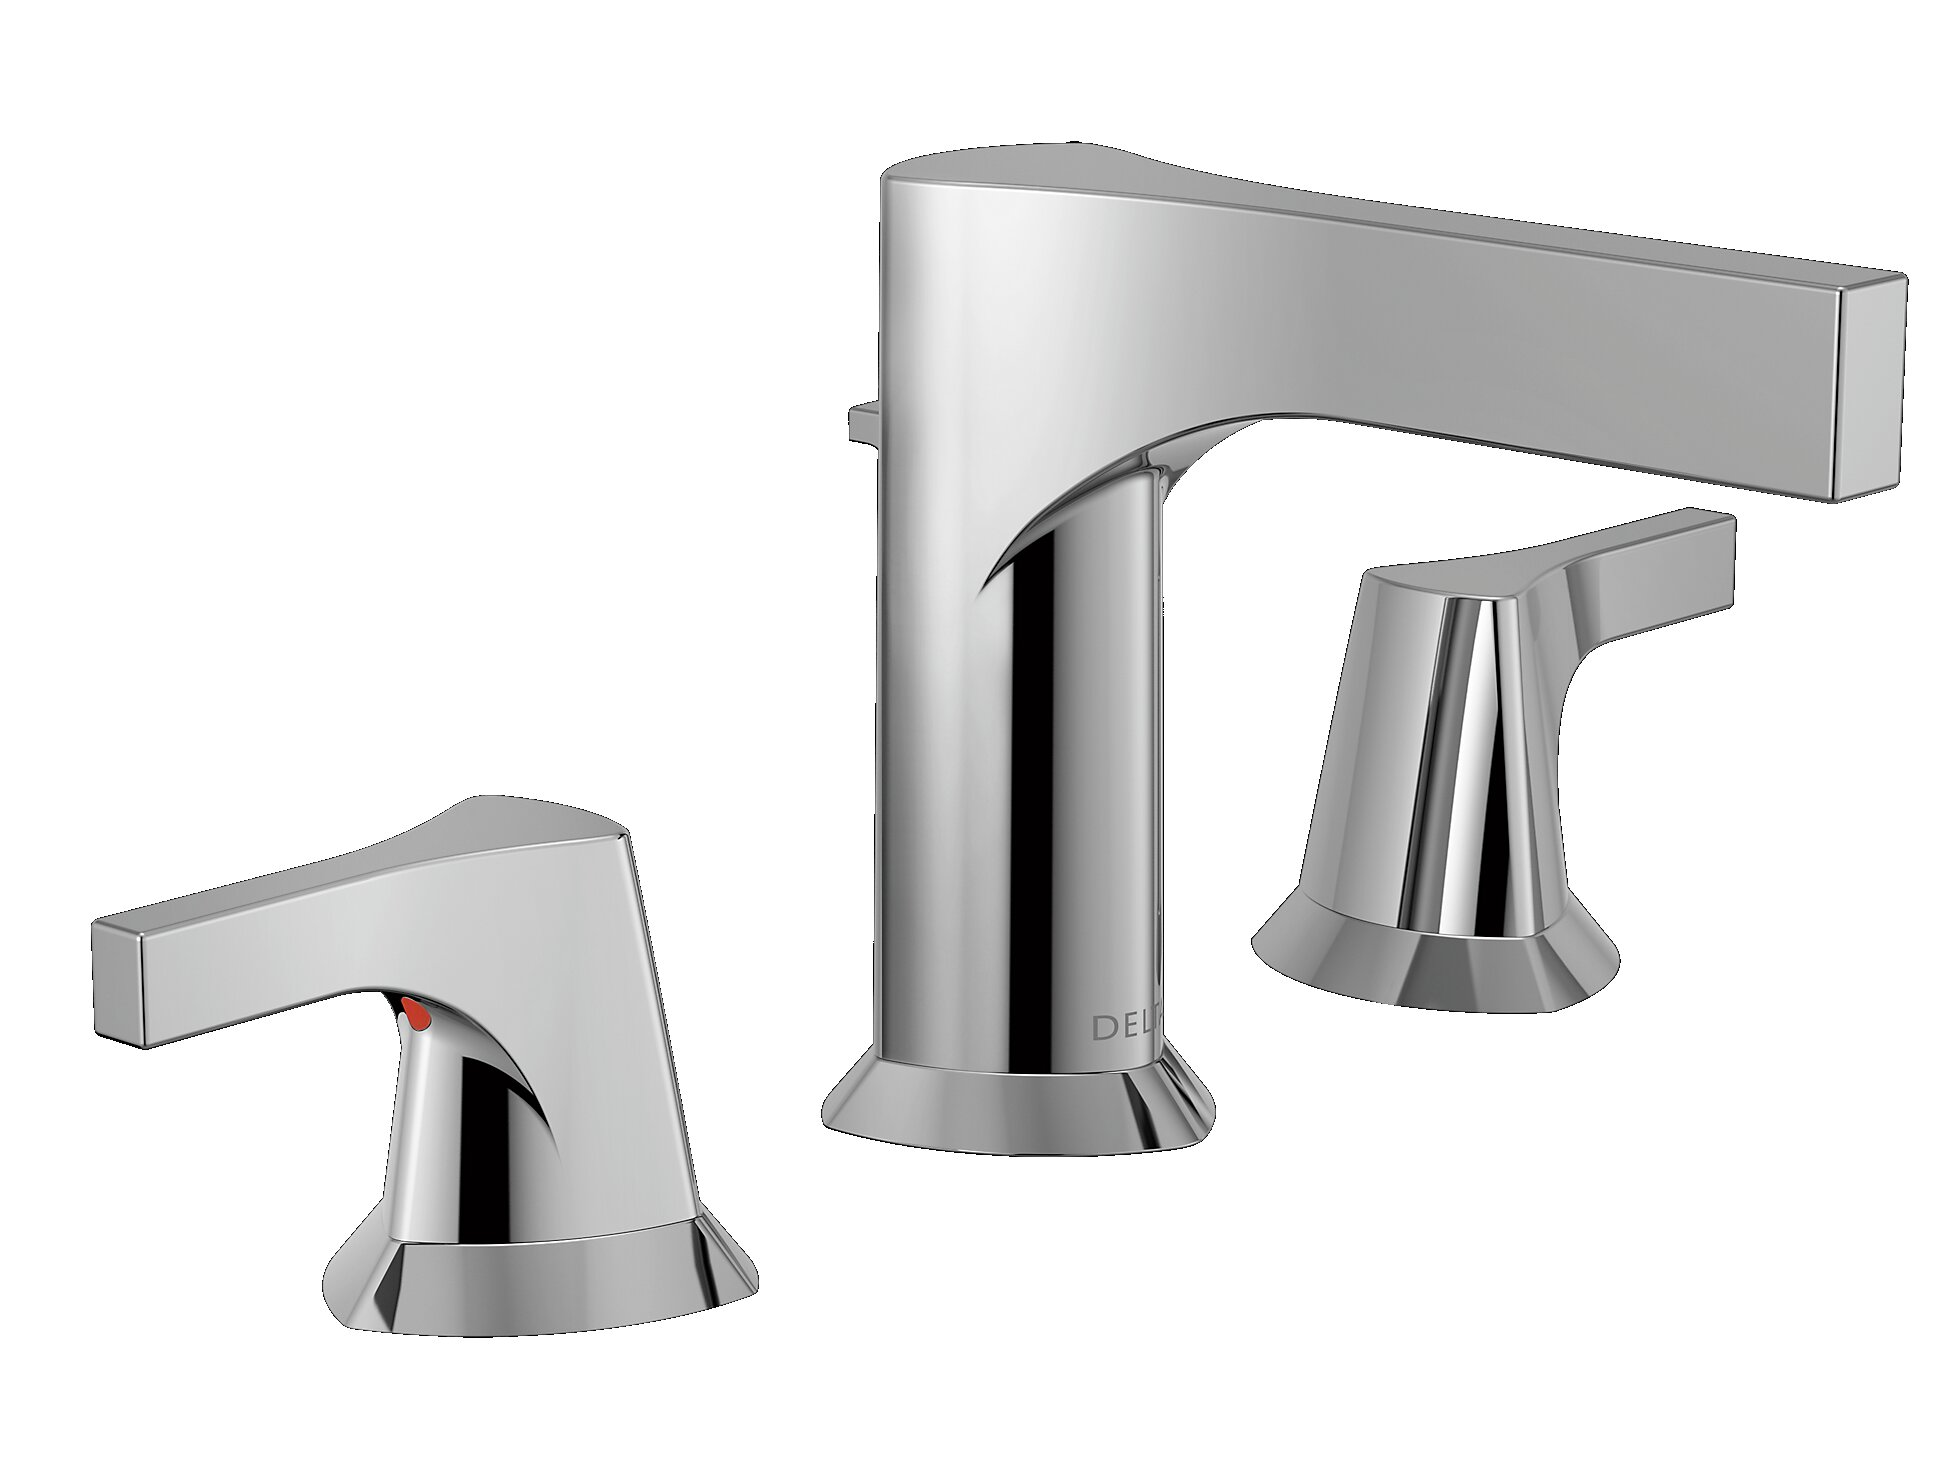 Zura Widespread Bathroom Faucet With Drain Assembly And Diamond Seal Technology Reviews Allmodern